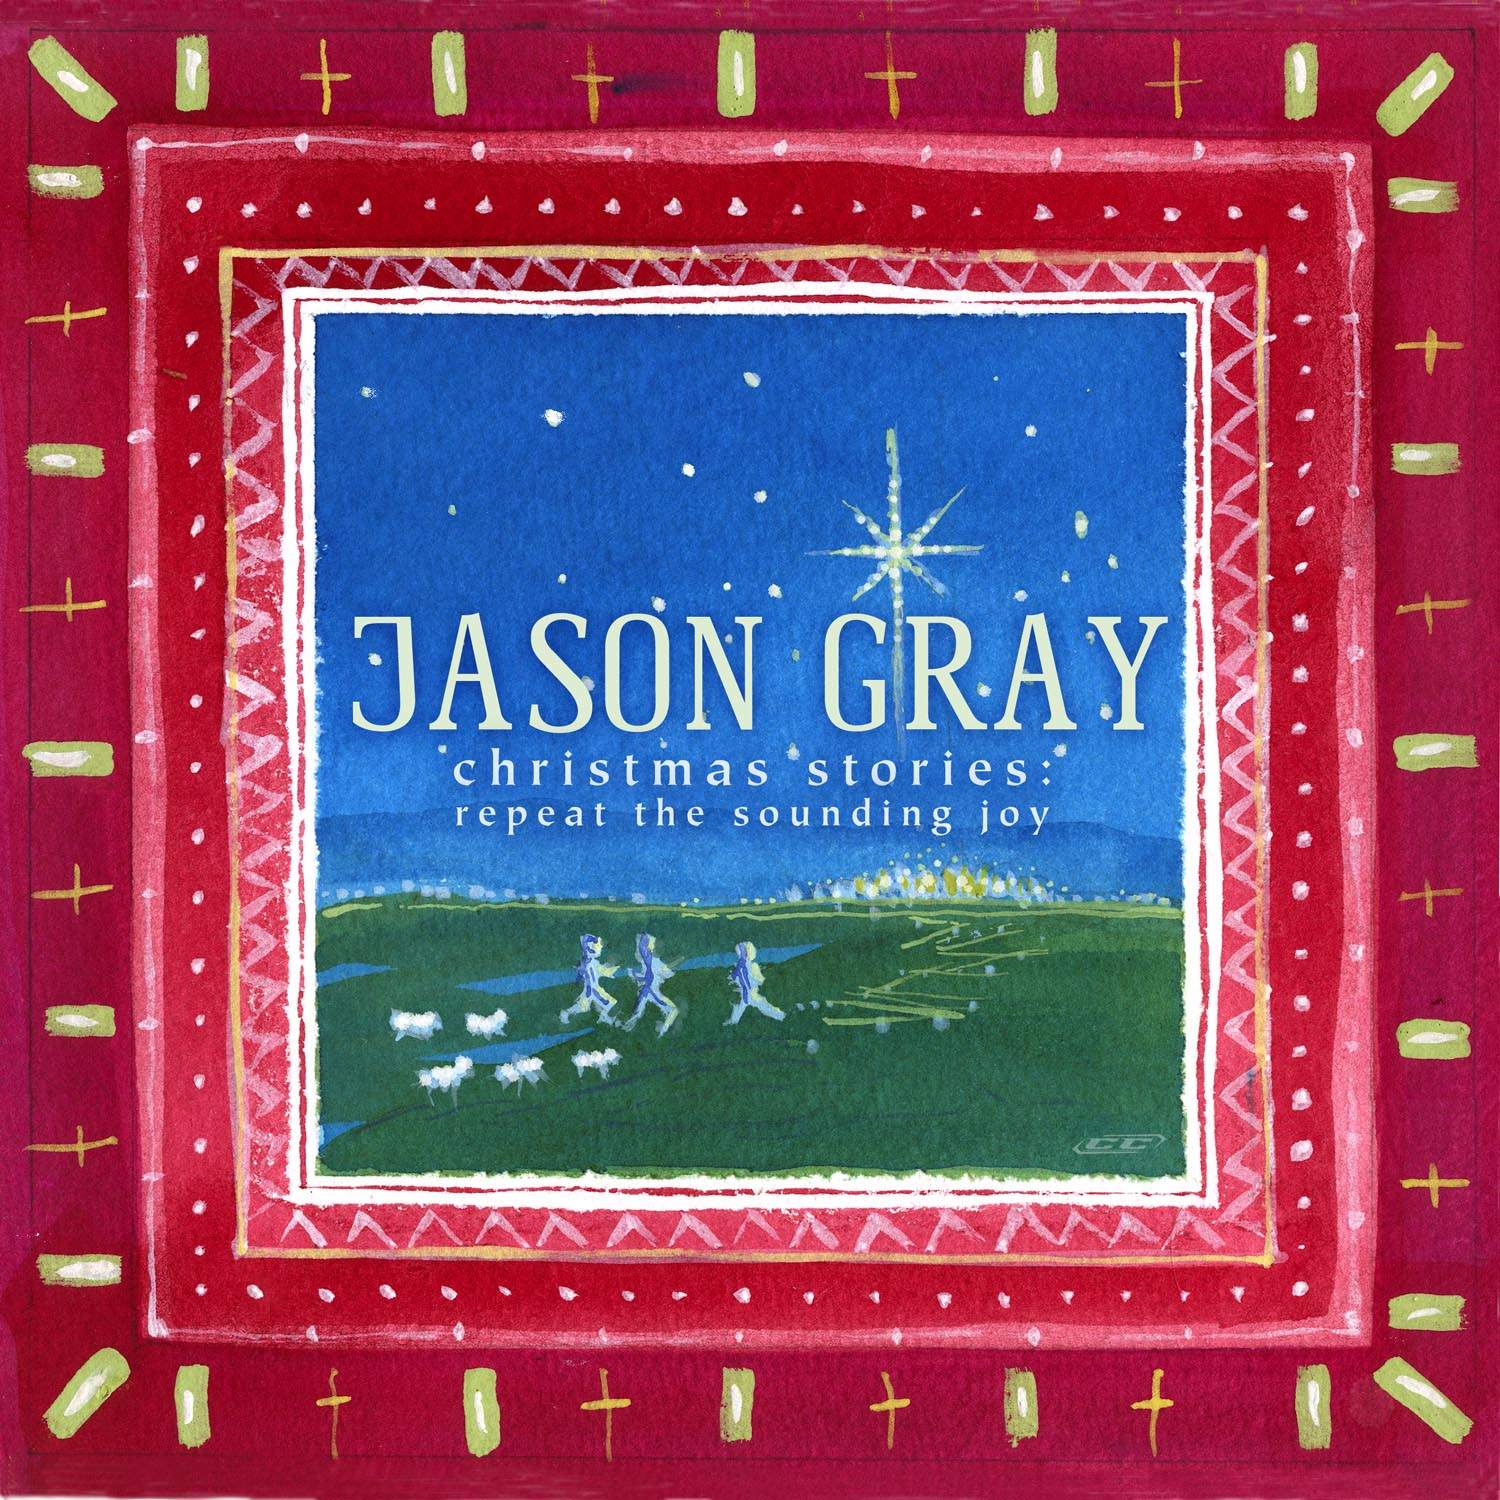 Jason Gray - Christmas Stories Repeat The Sounding Joy 2012 English Christian Christmas Album